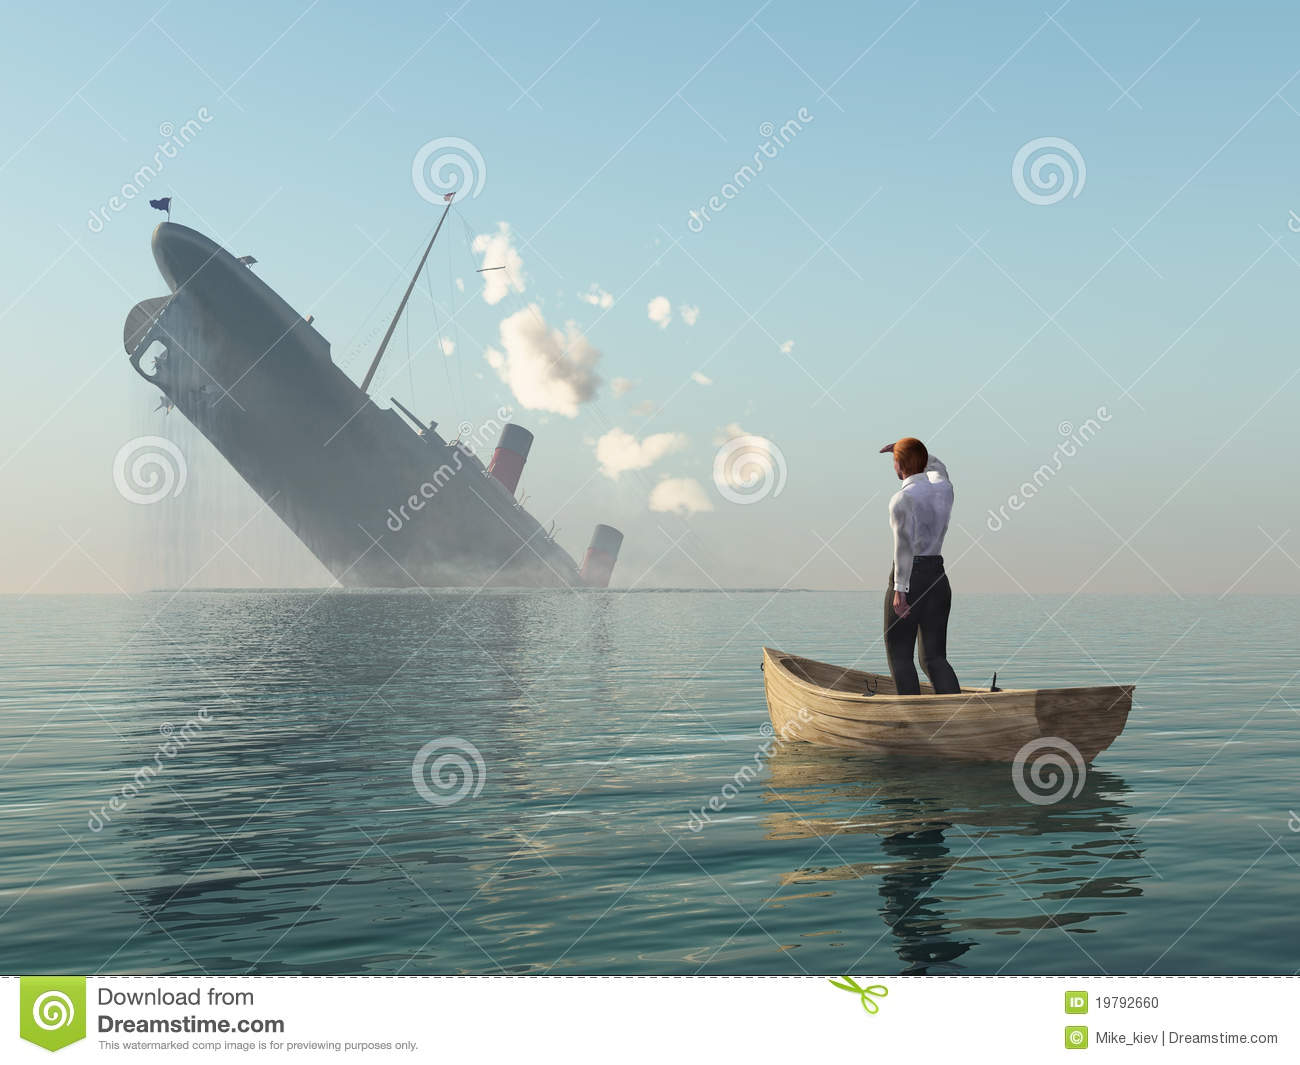 Man in boat looking on shipwreck